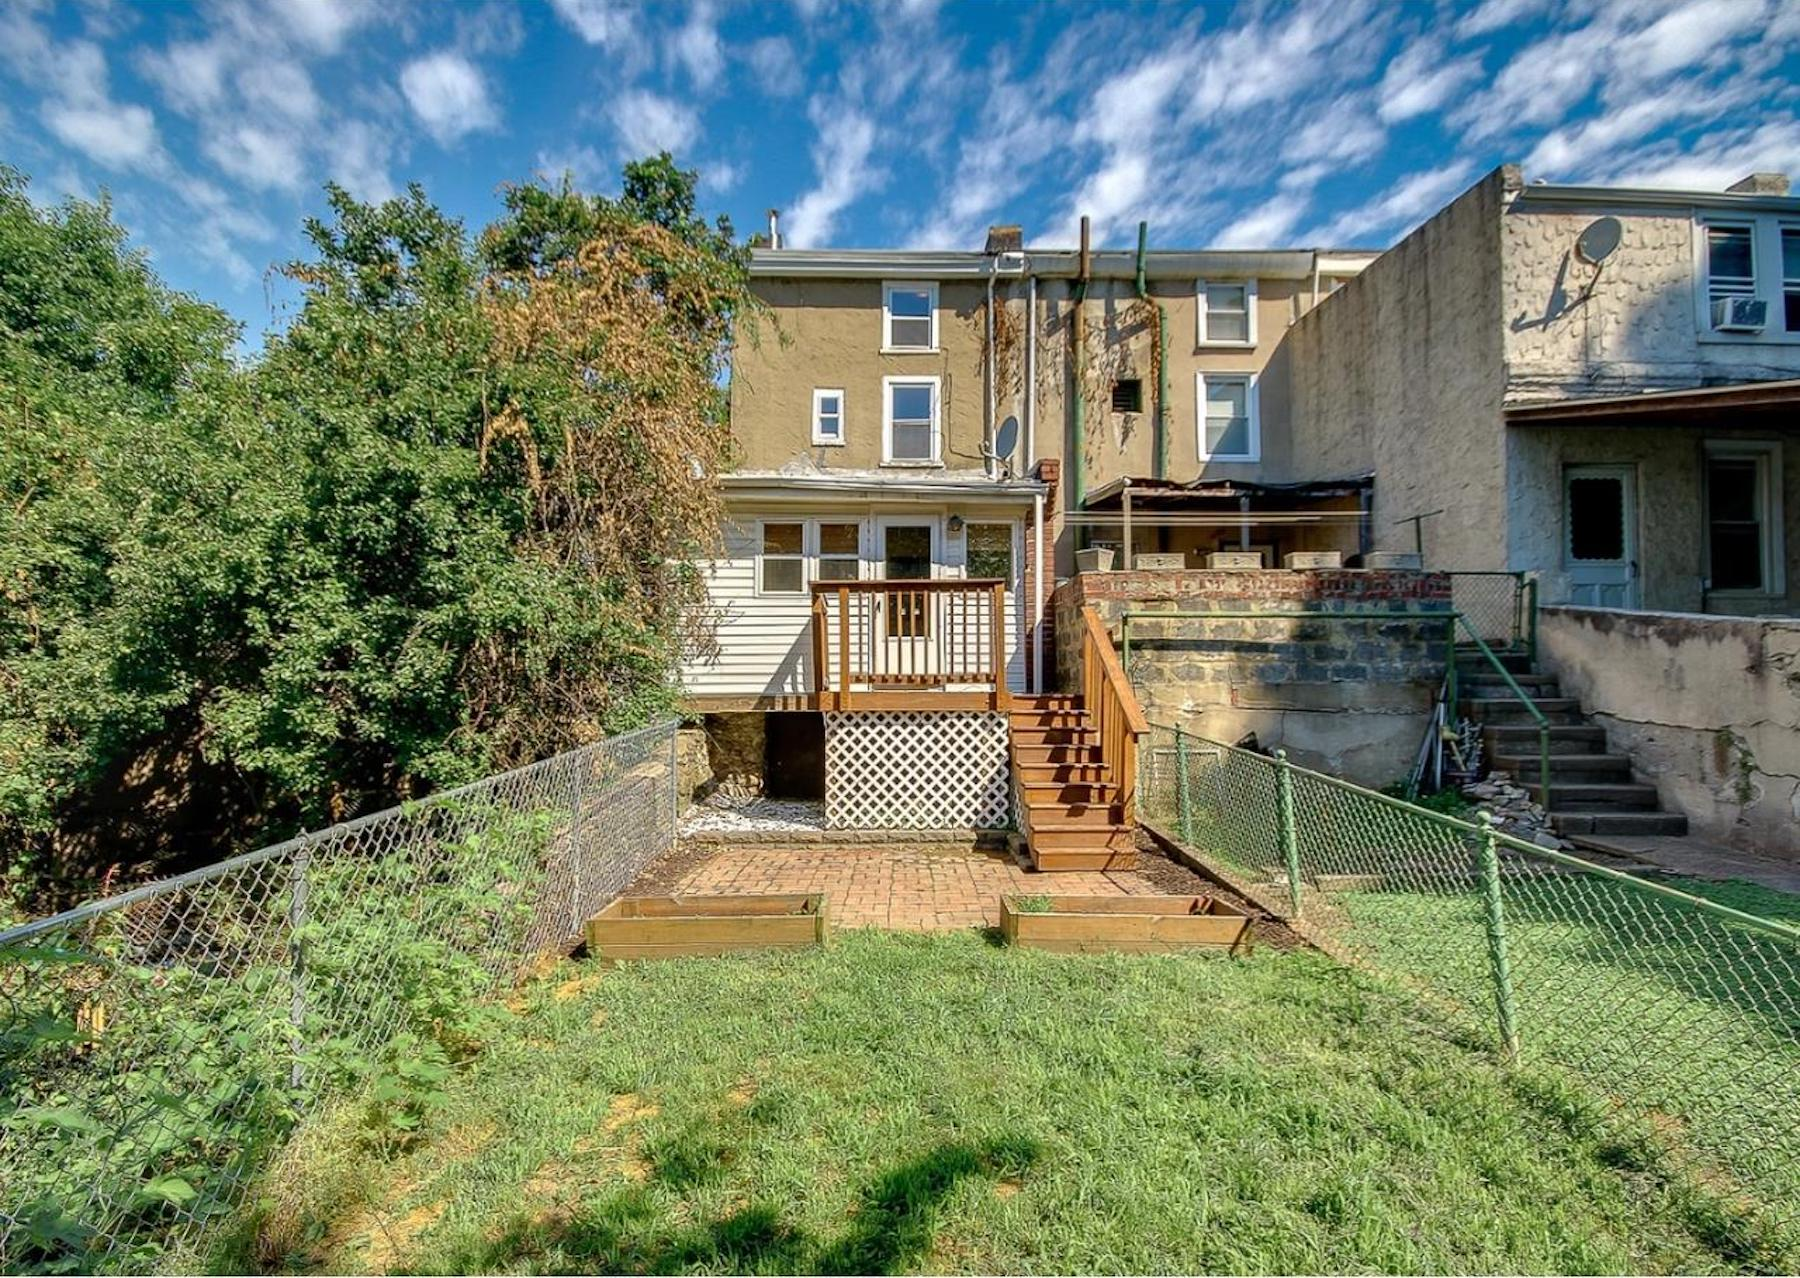 How Much For Manayunk Home With A Big Backyard?